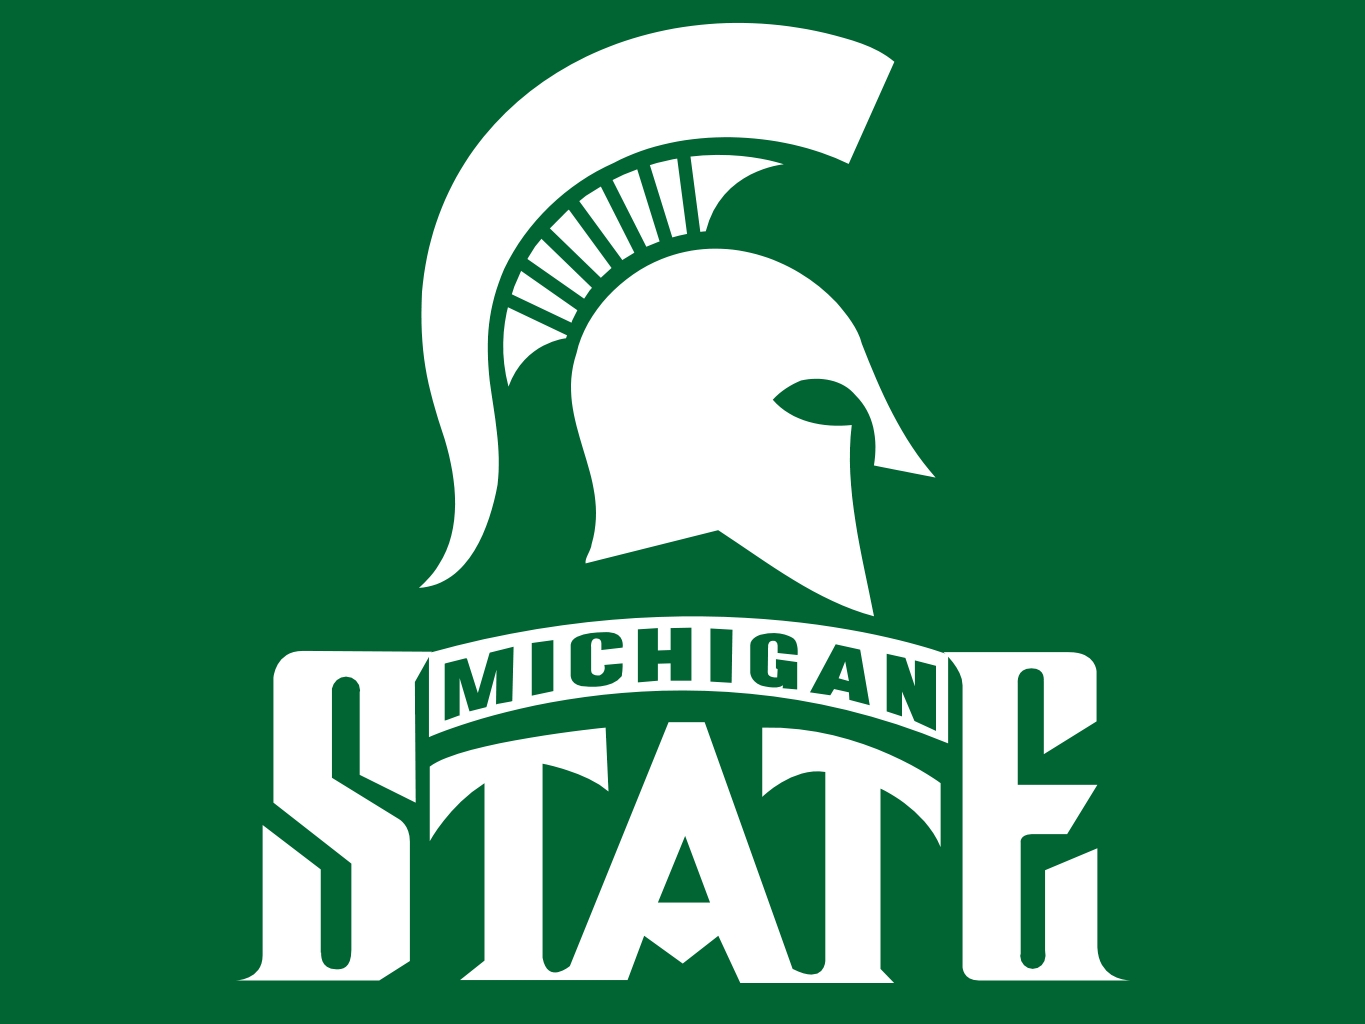 Michigan state logo clip art svg freeuse library Michigan State Football Clipart - Clipart Kid svg freeuse library